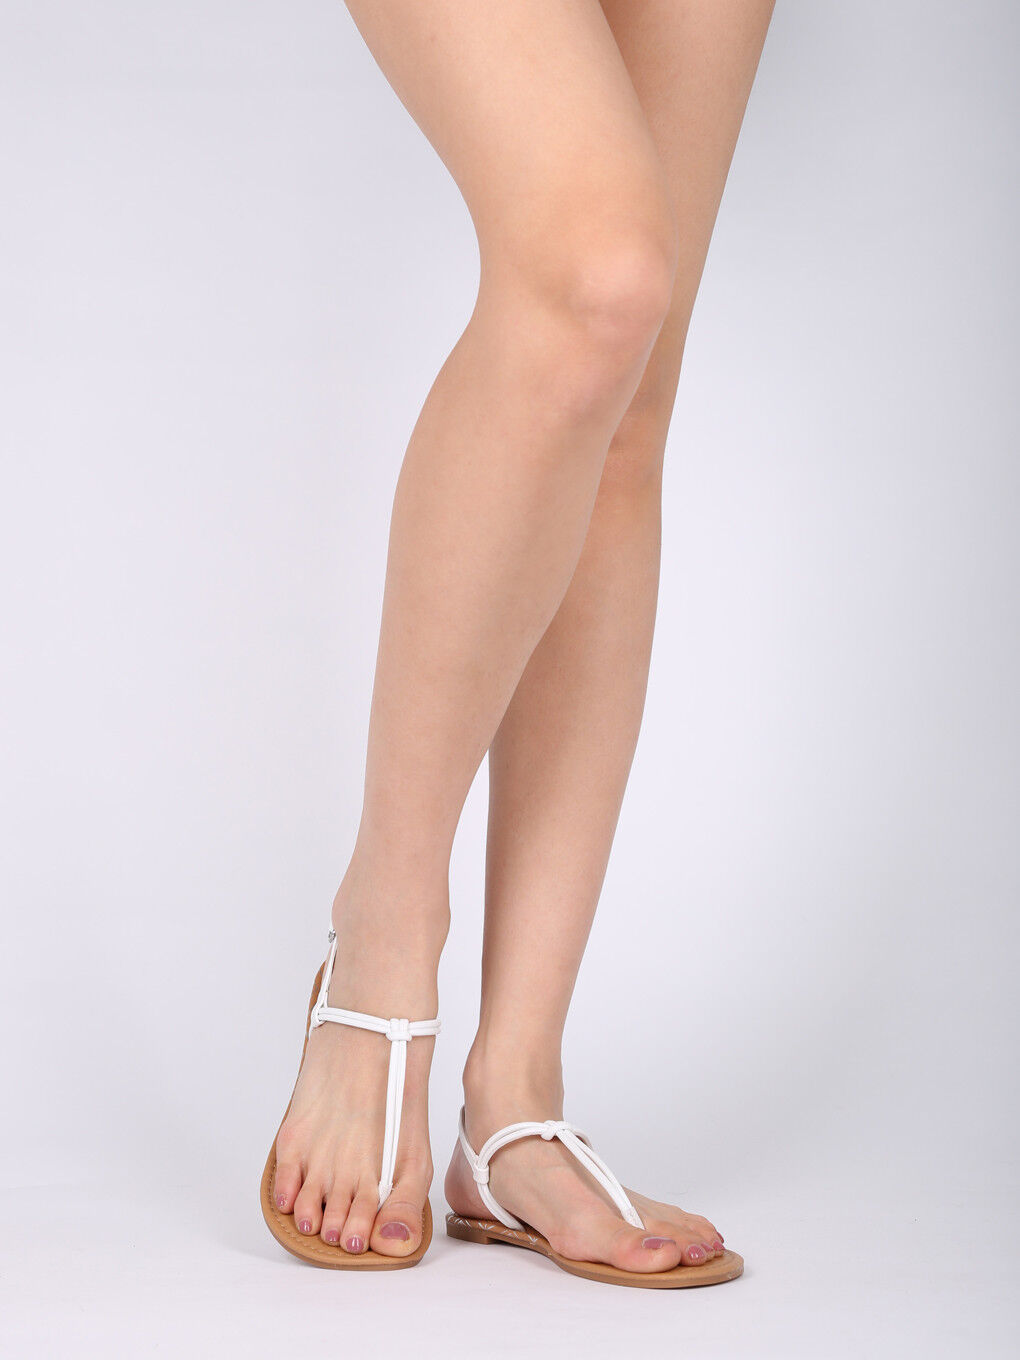 New - Women PU Knotted T-Strap Slingback Flat Sandal - New 17868 By Qupid Collection e7a5b1